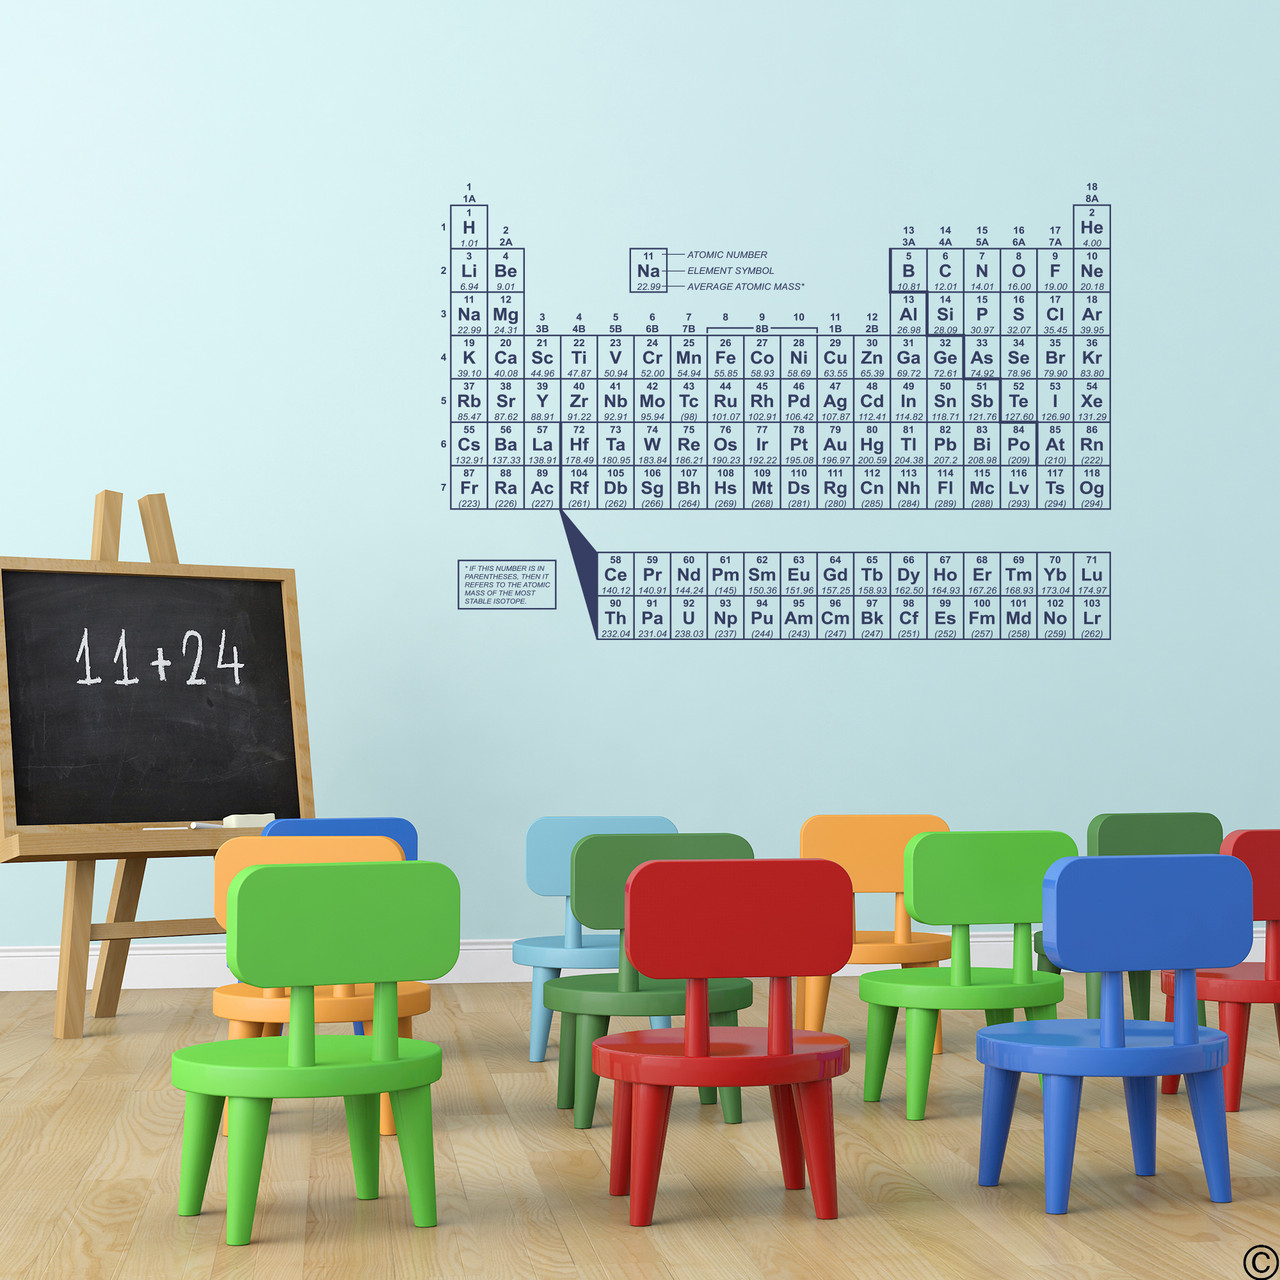 The advance periodic table wall decal for high school science and beyond, shown here on a classroom wall in dark blue.